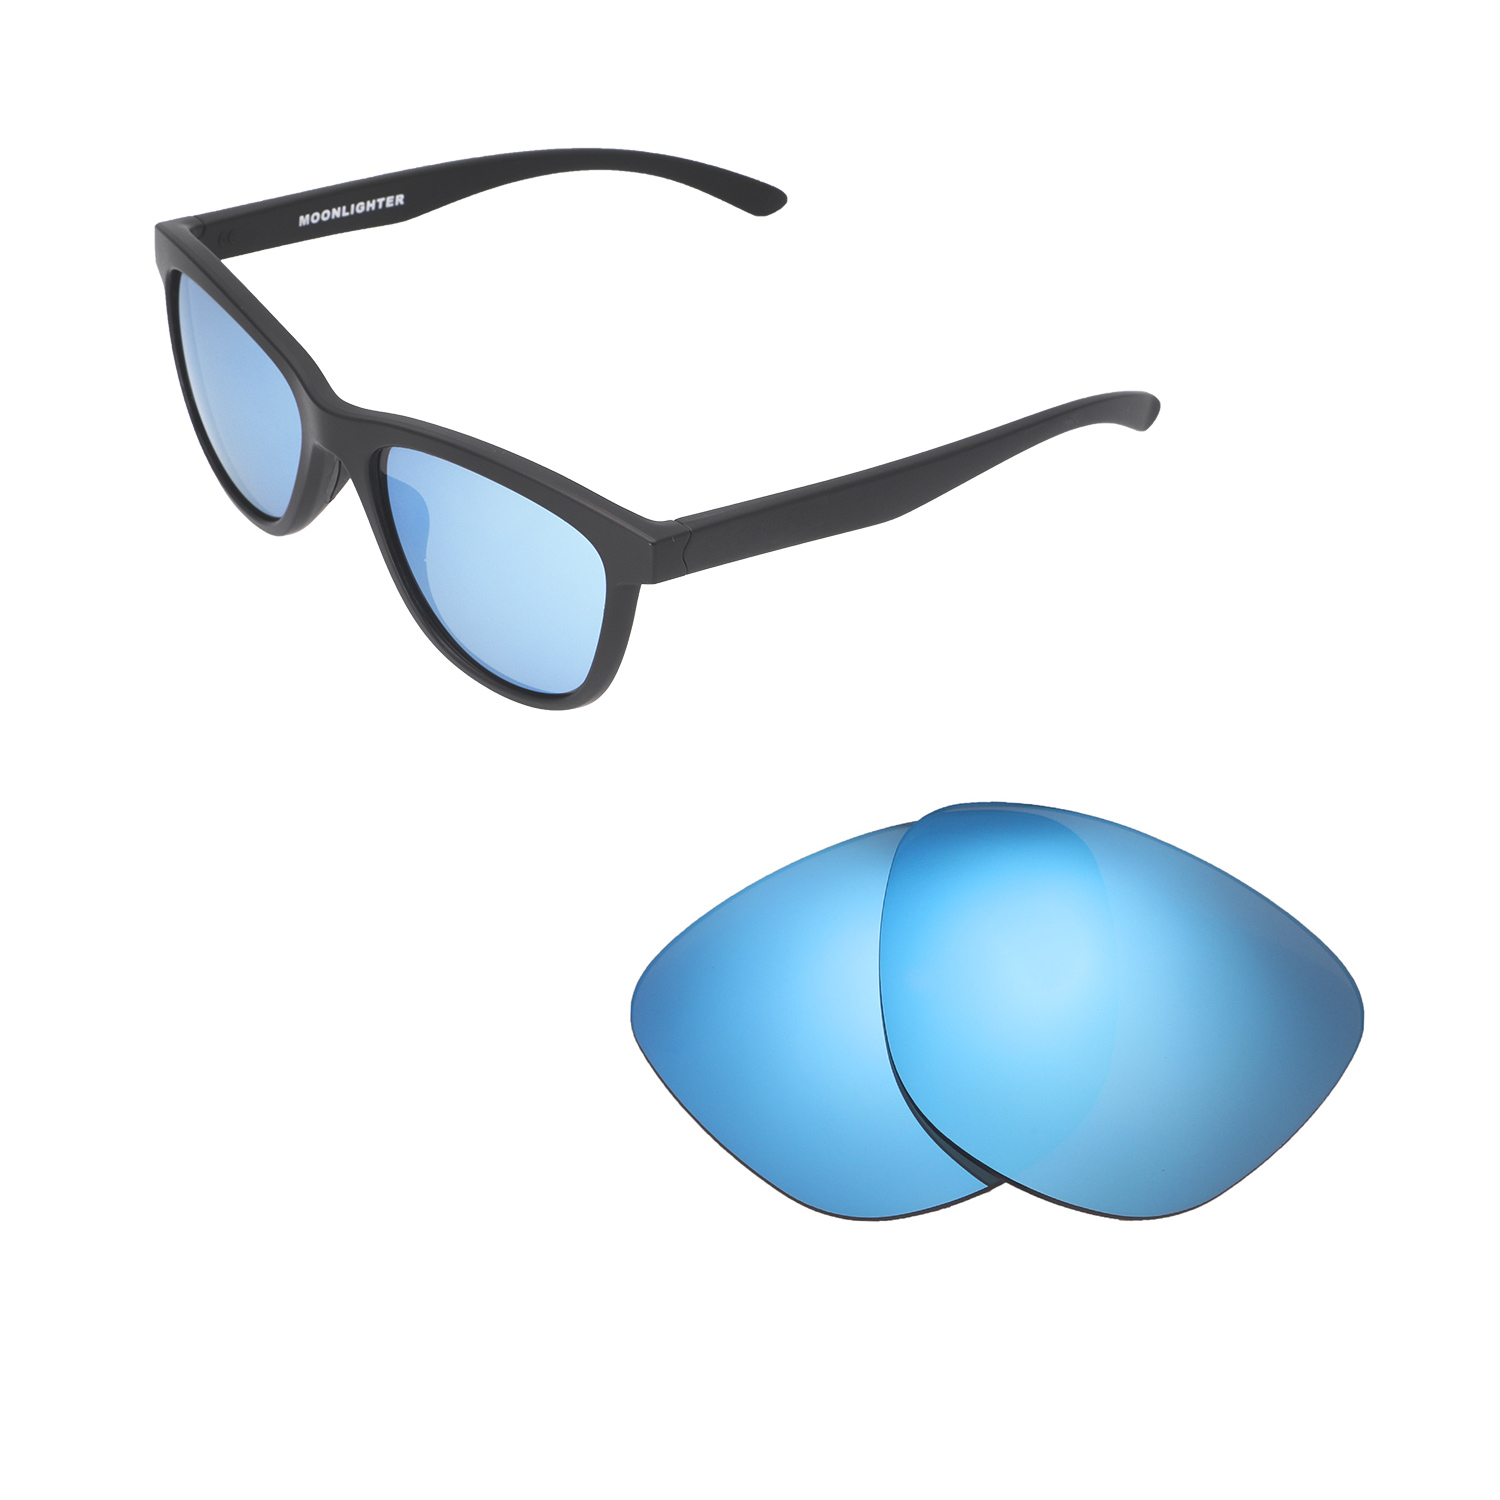 f2849bd1fca8 Details about Walleva Ice Blue Polarized Replacement Lenses For Oakley  Moonlighter Sunglasses